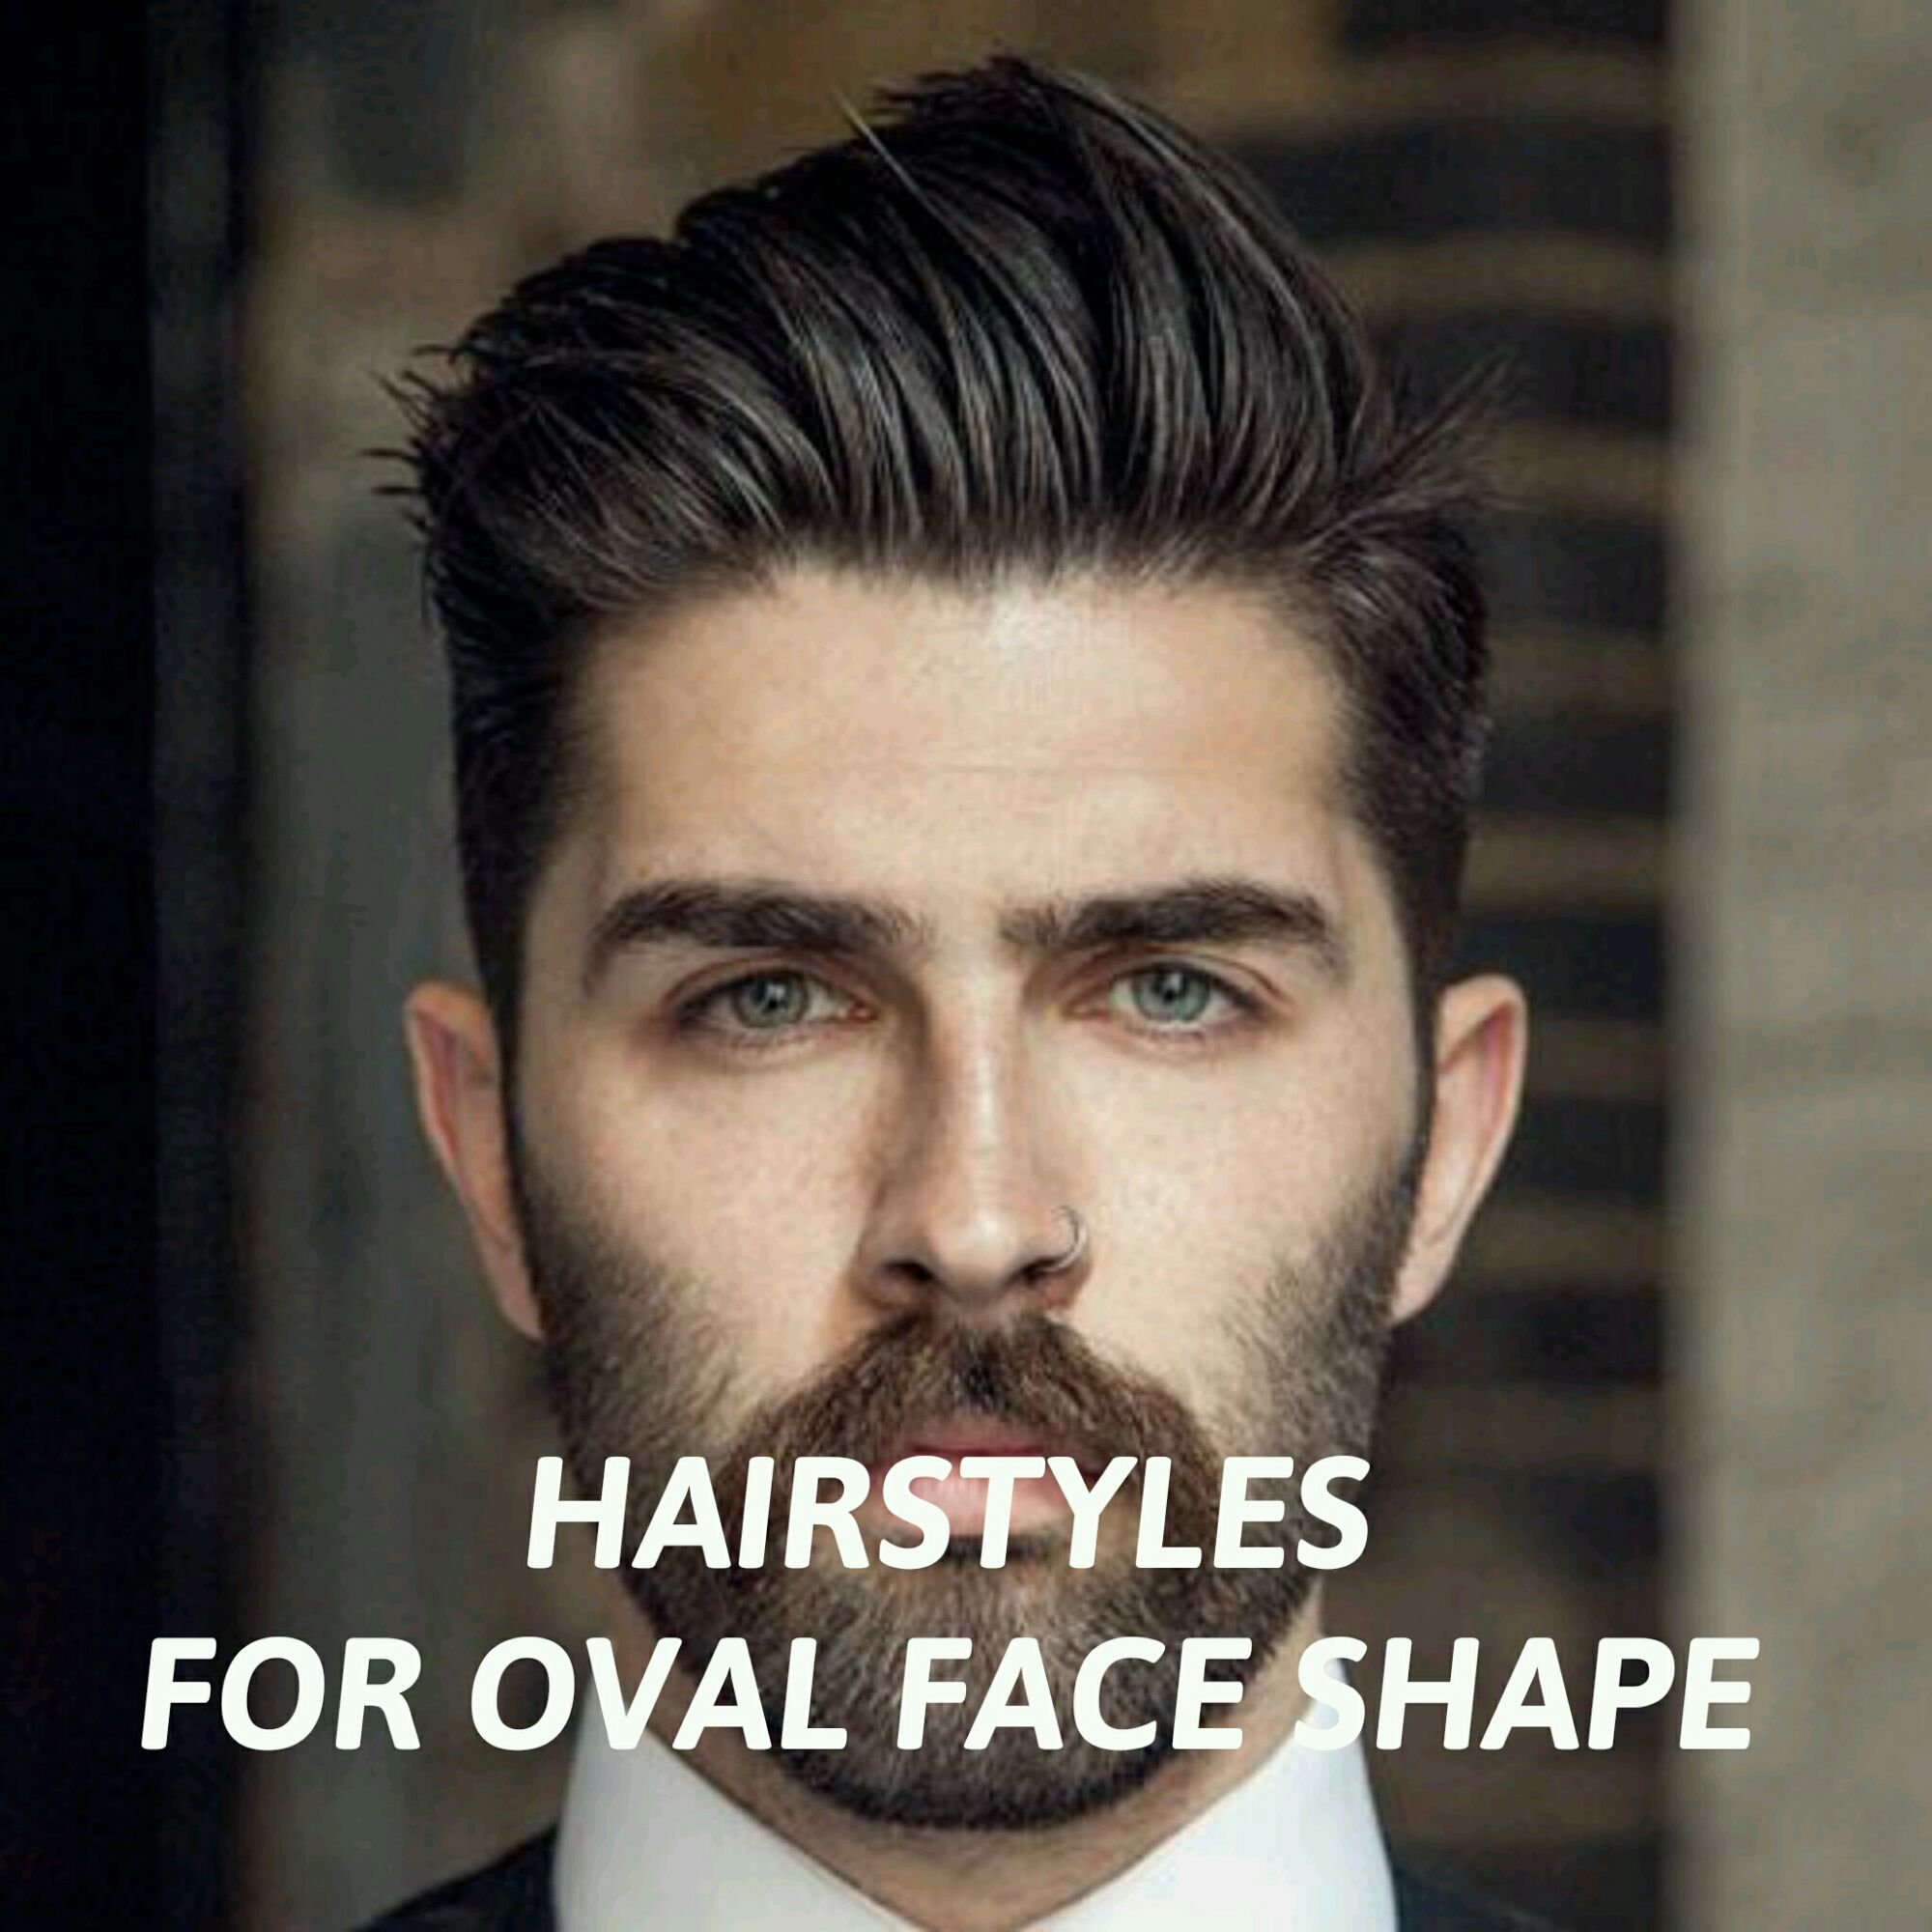 Hiphype In Nbspthis Website Is For Sale Nbsphiphype Resources And Information Oval Face Men Oval Face Hairstyles Face Shape Hairstyles